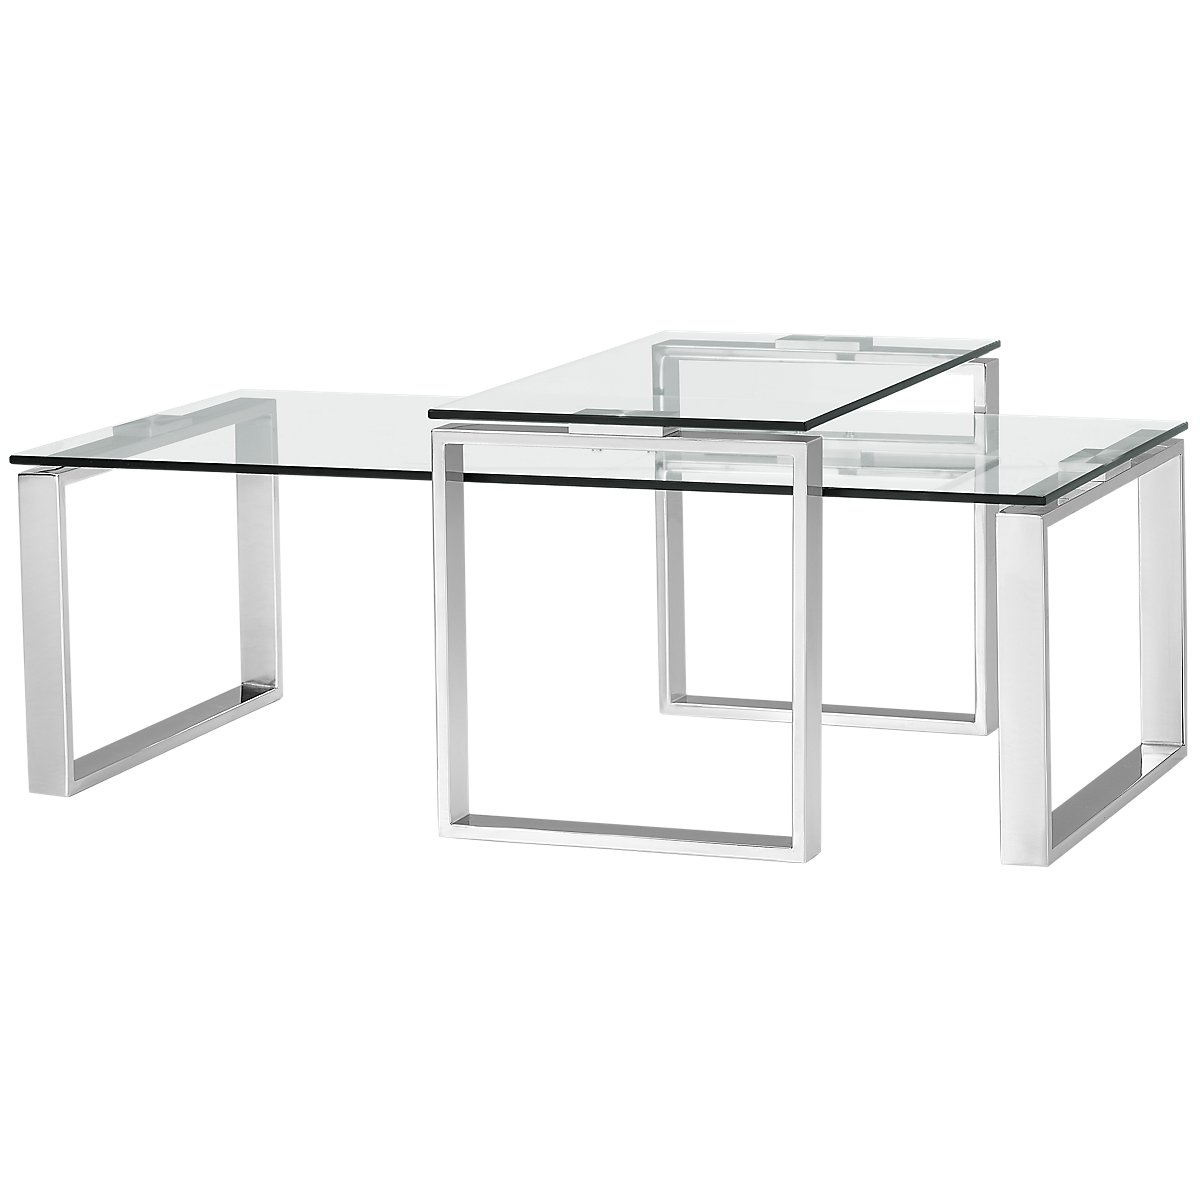 Katrina Clear Glass 2 Pack Tables